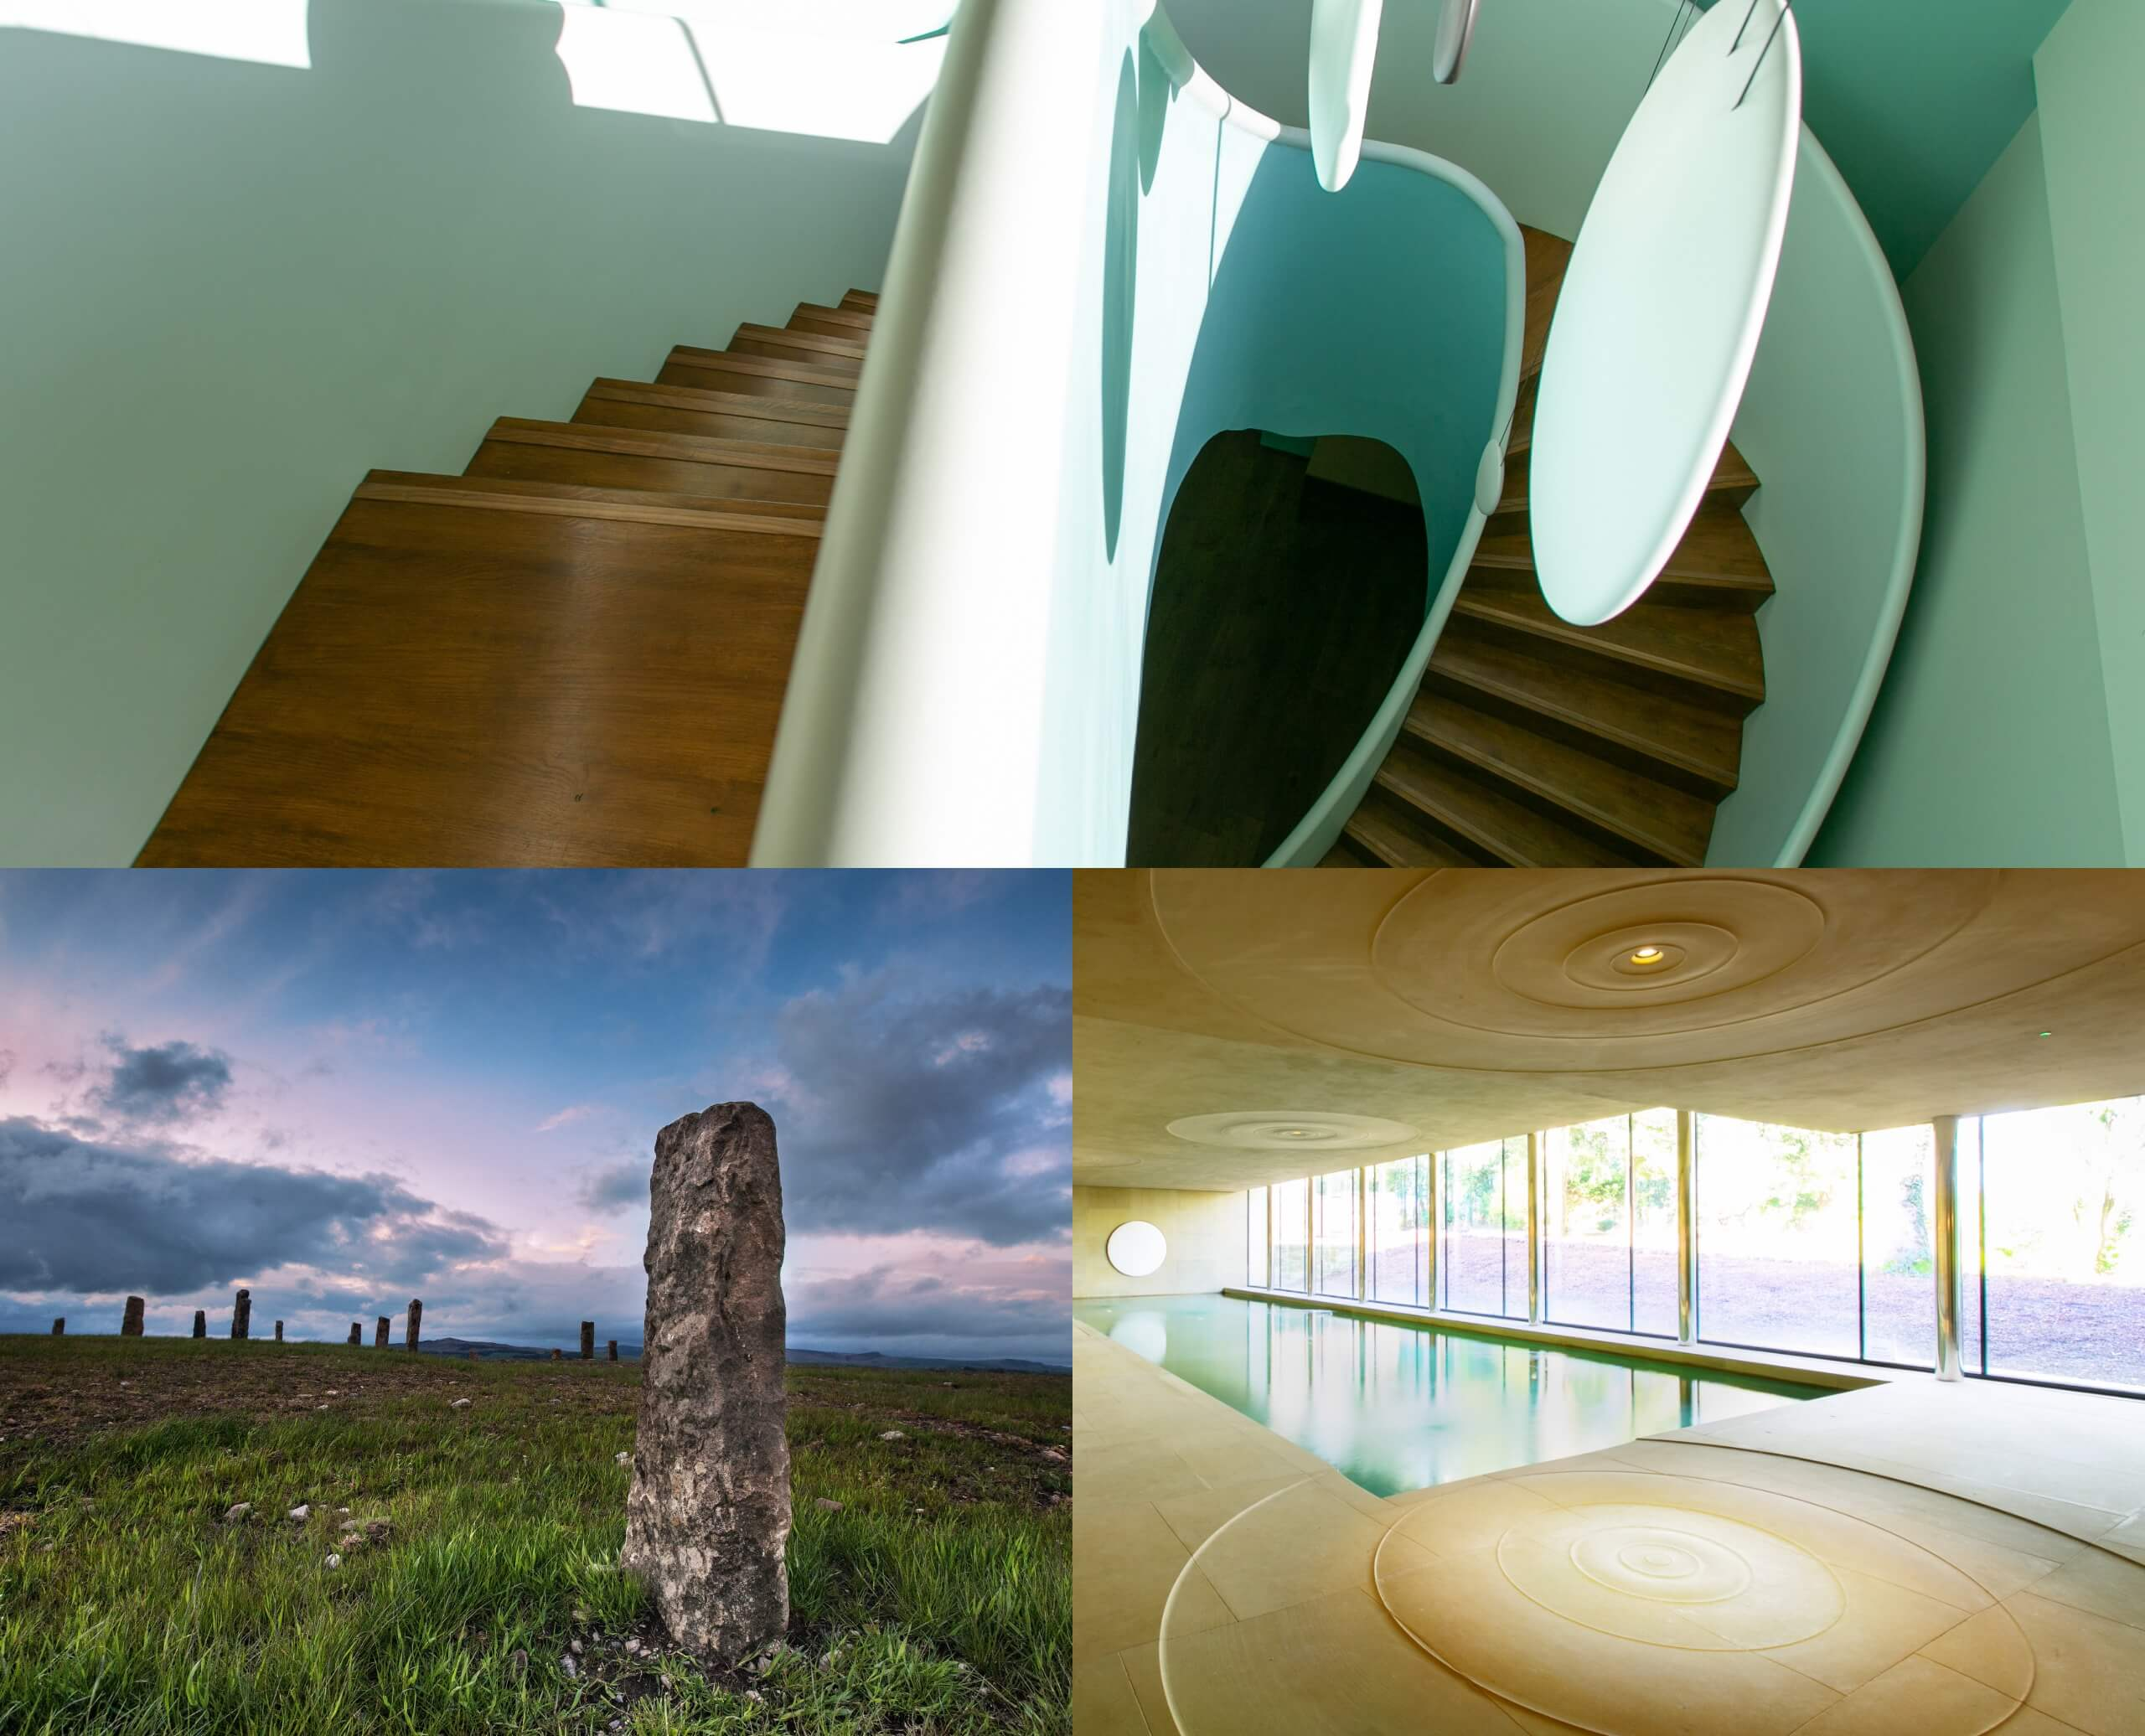 Avalon Wellbeing Centre and Sanctuary